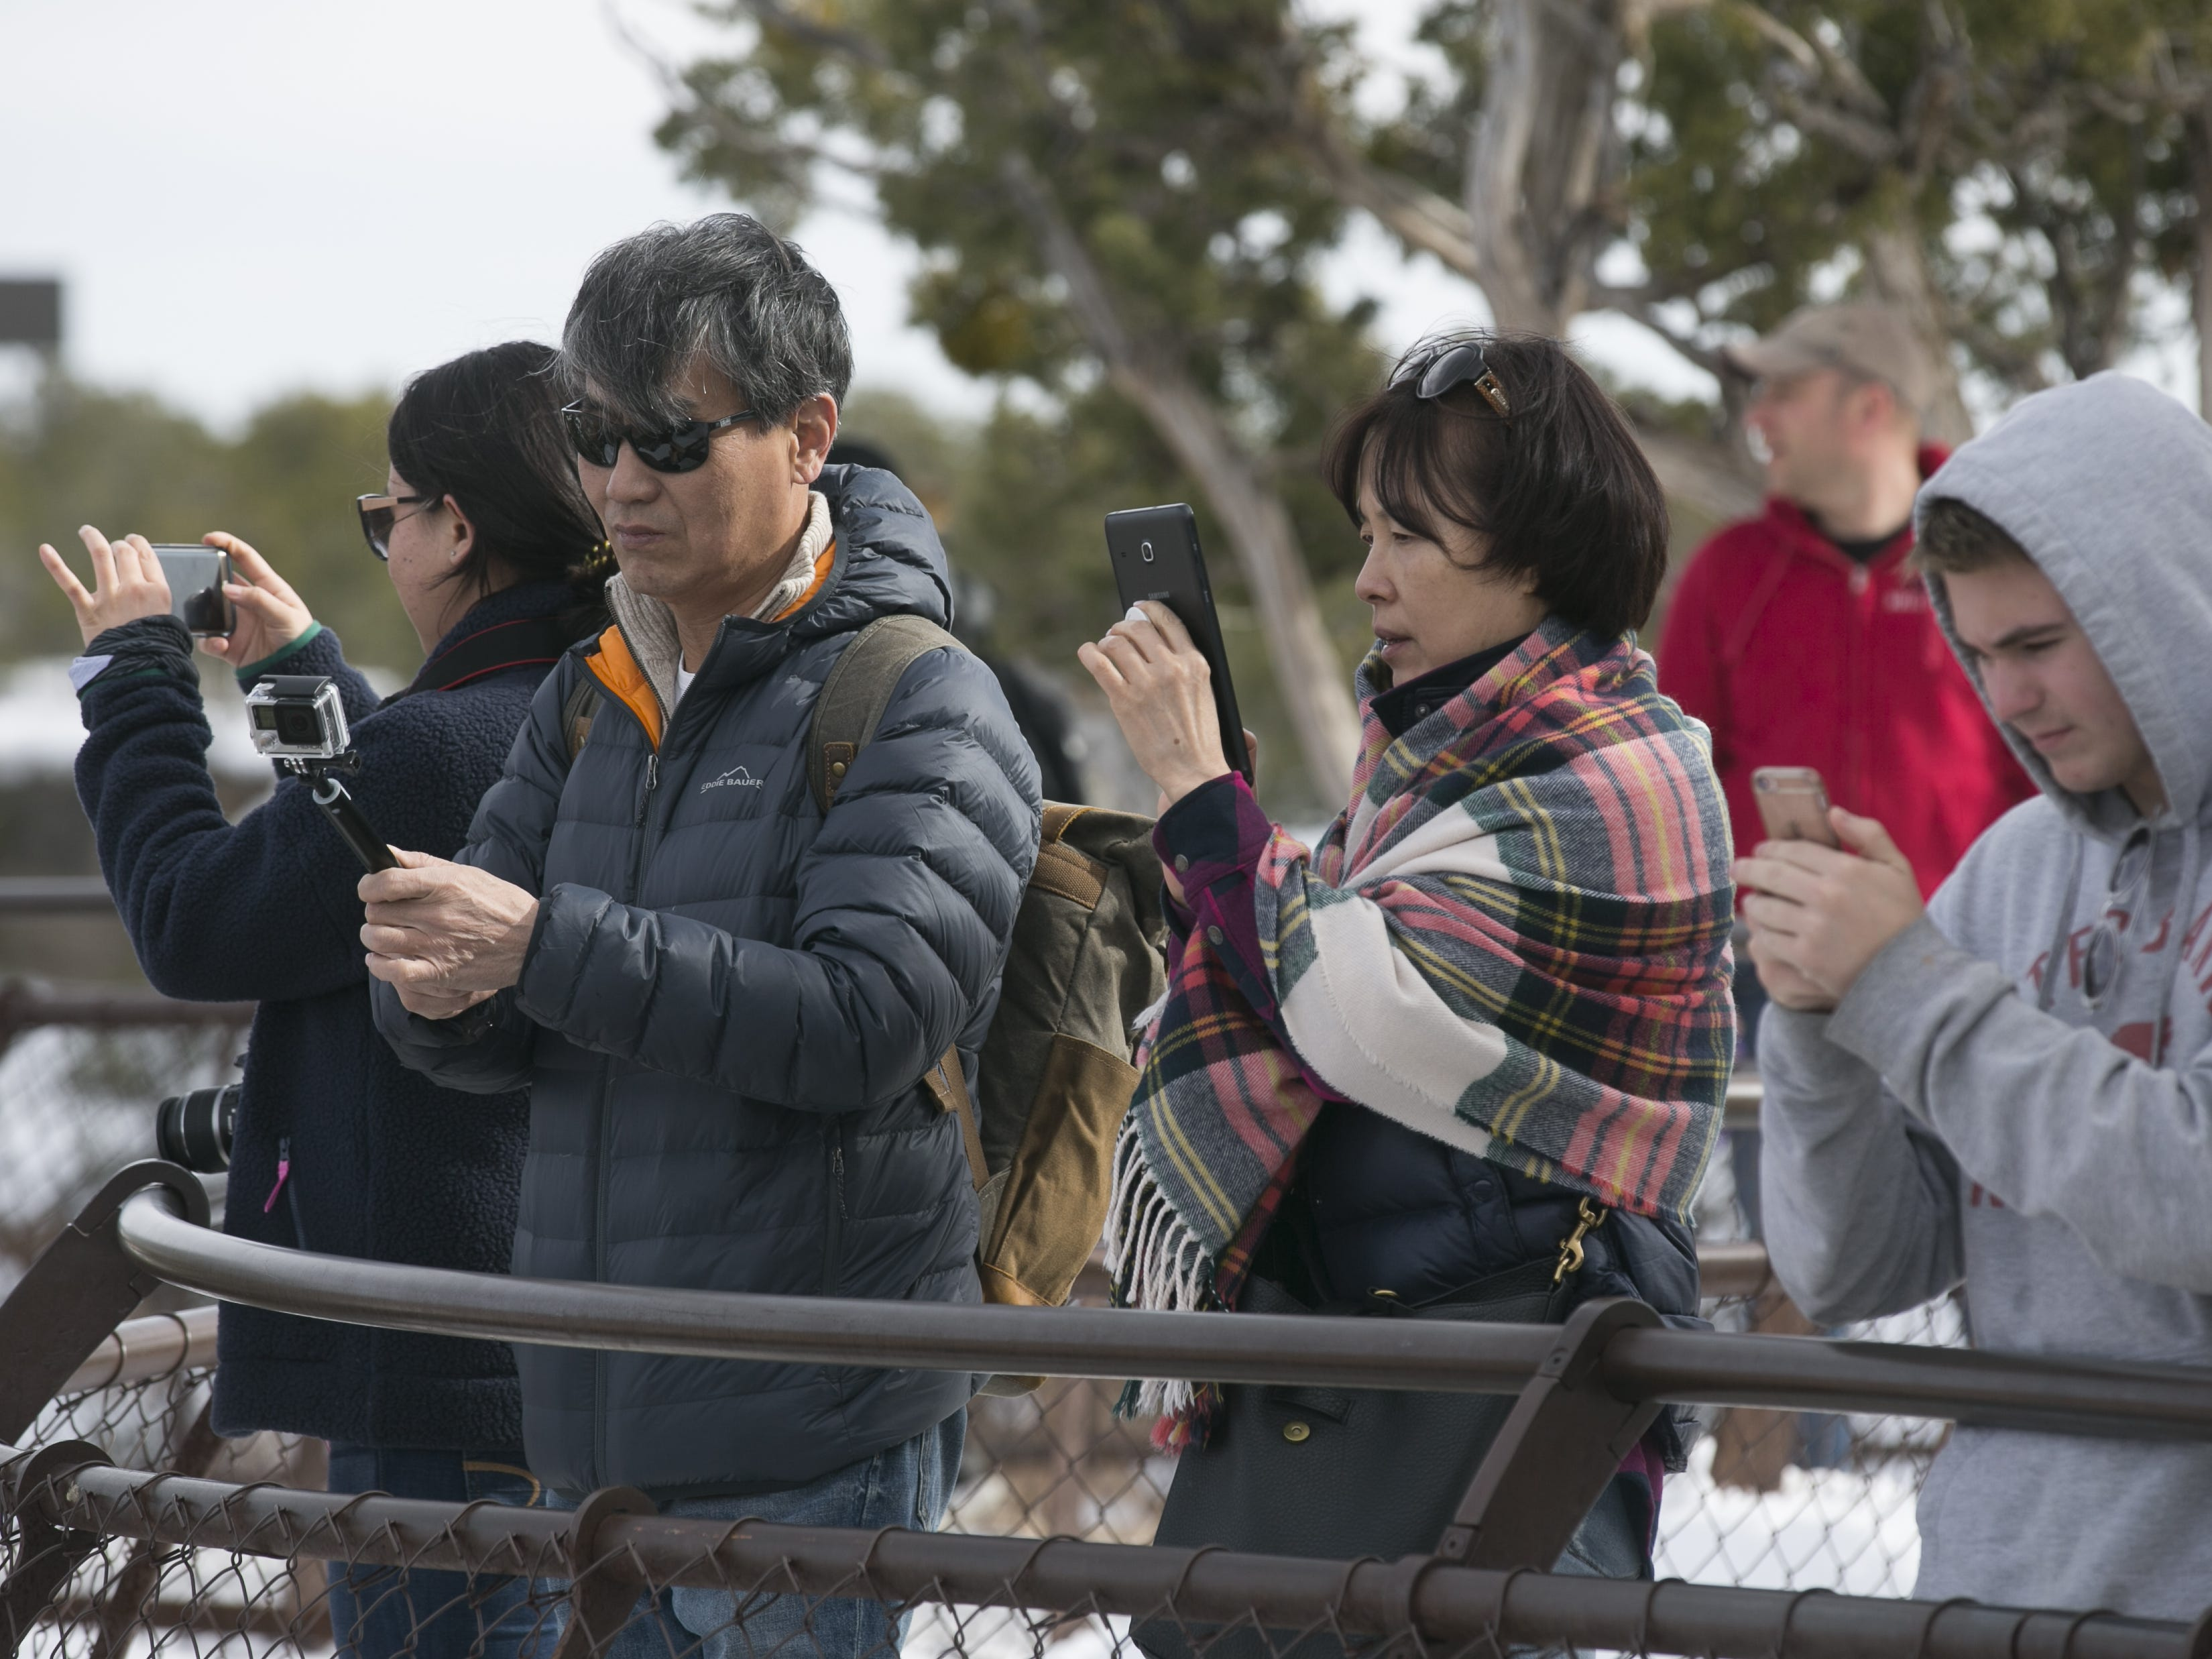 Visitors gather at one of the overlooks at Grand Canyon National Park.